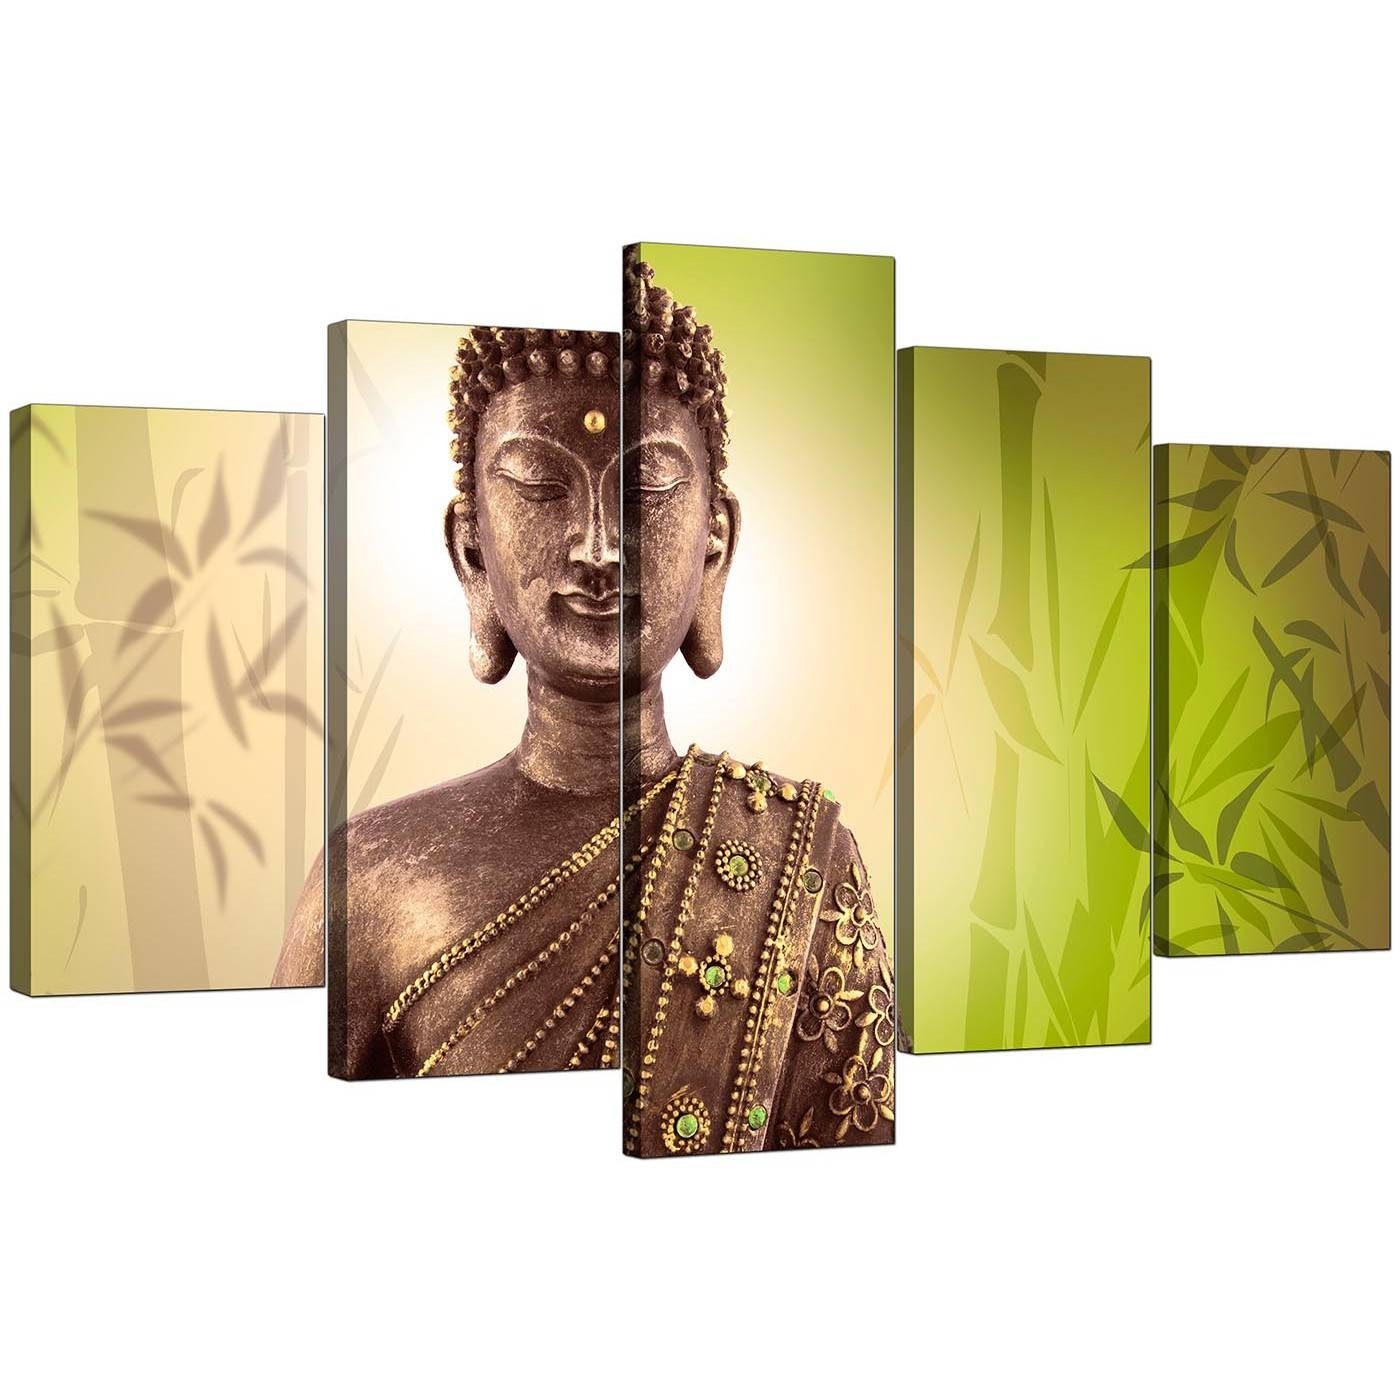 Extra Large Buddha Canvas Wall Art 5 Piece In Green Throughout Newest Large Buddha Wall Art (Gallery 6 of 15)